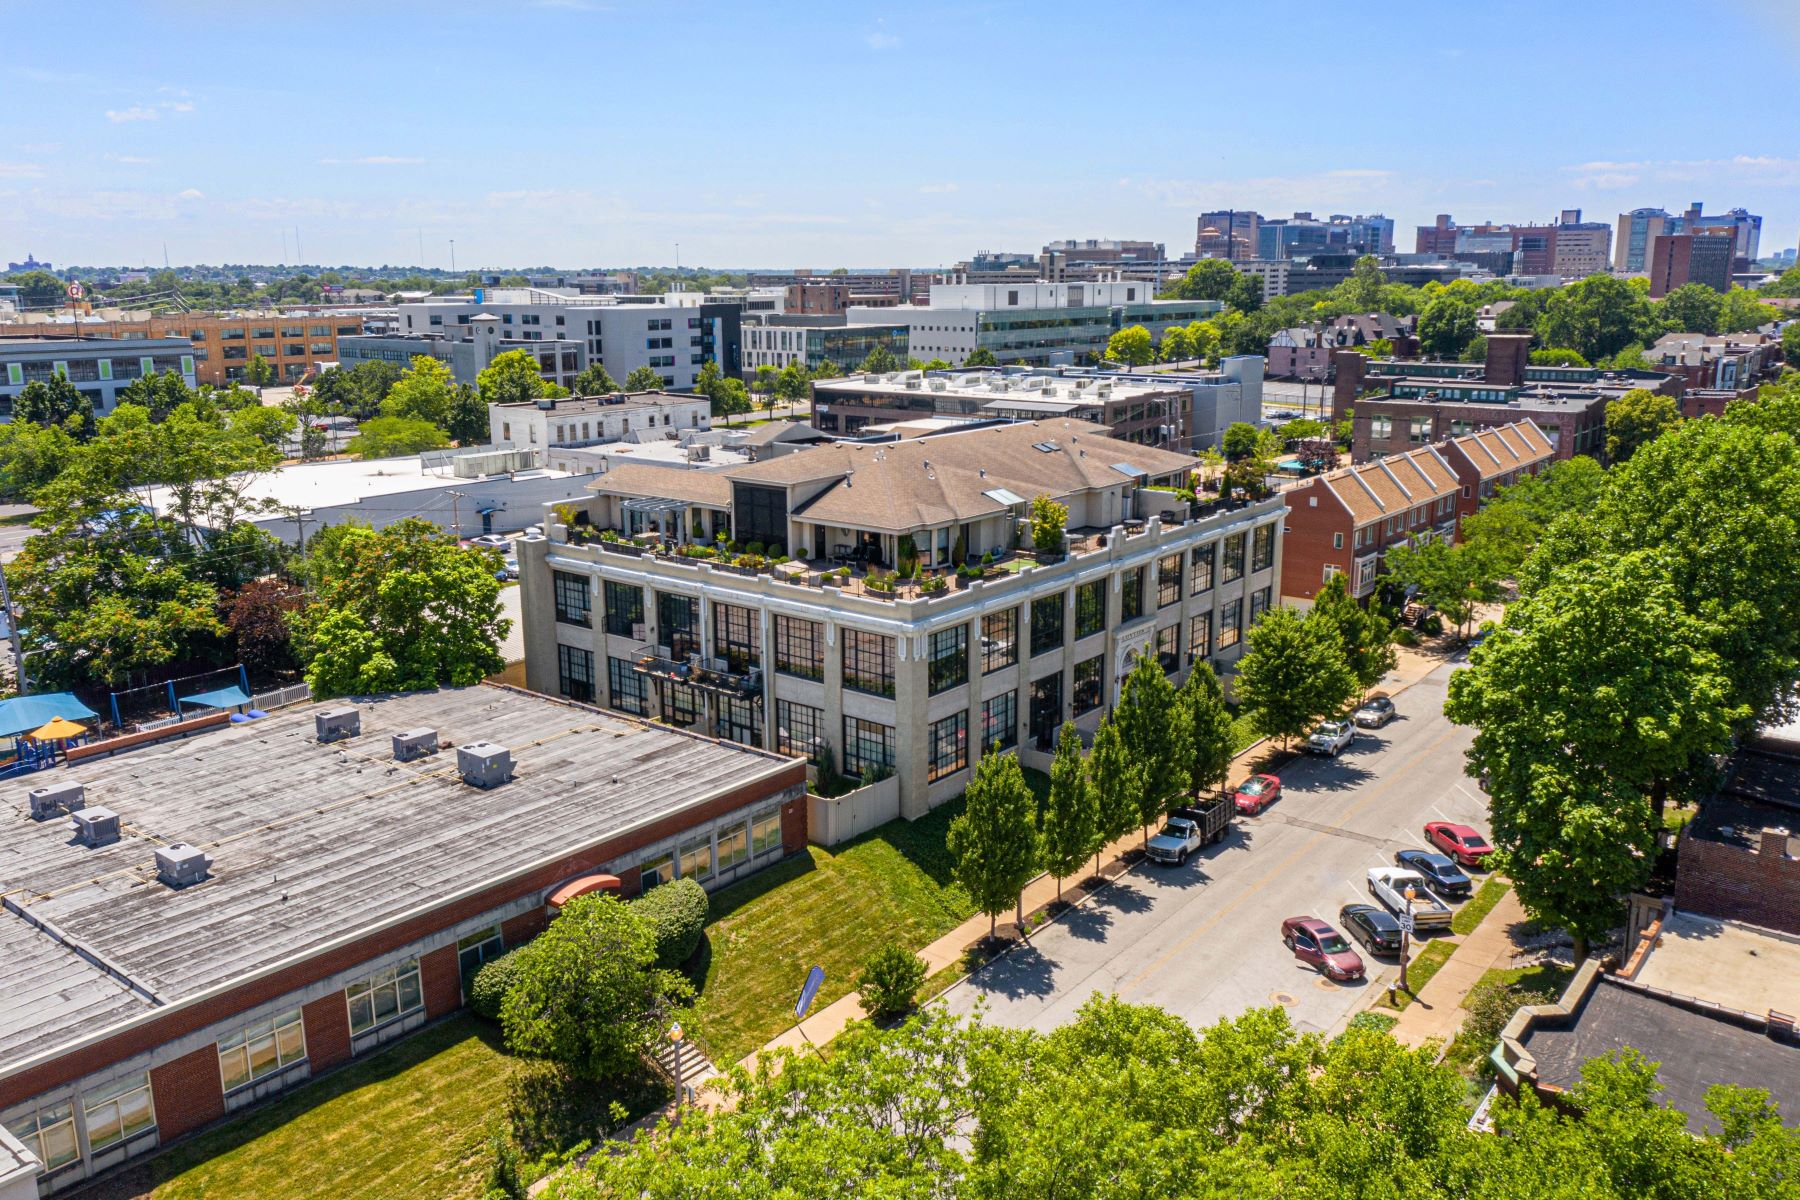 Additional photo for property listing at Two-story loft condo in the Central West End 4200 Laclede Avenue #201 St. Louis, Missouri 63108 United States